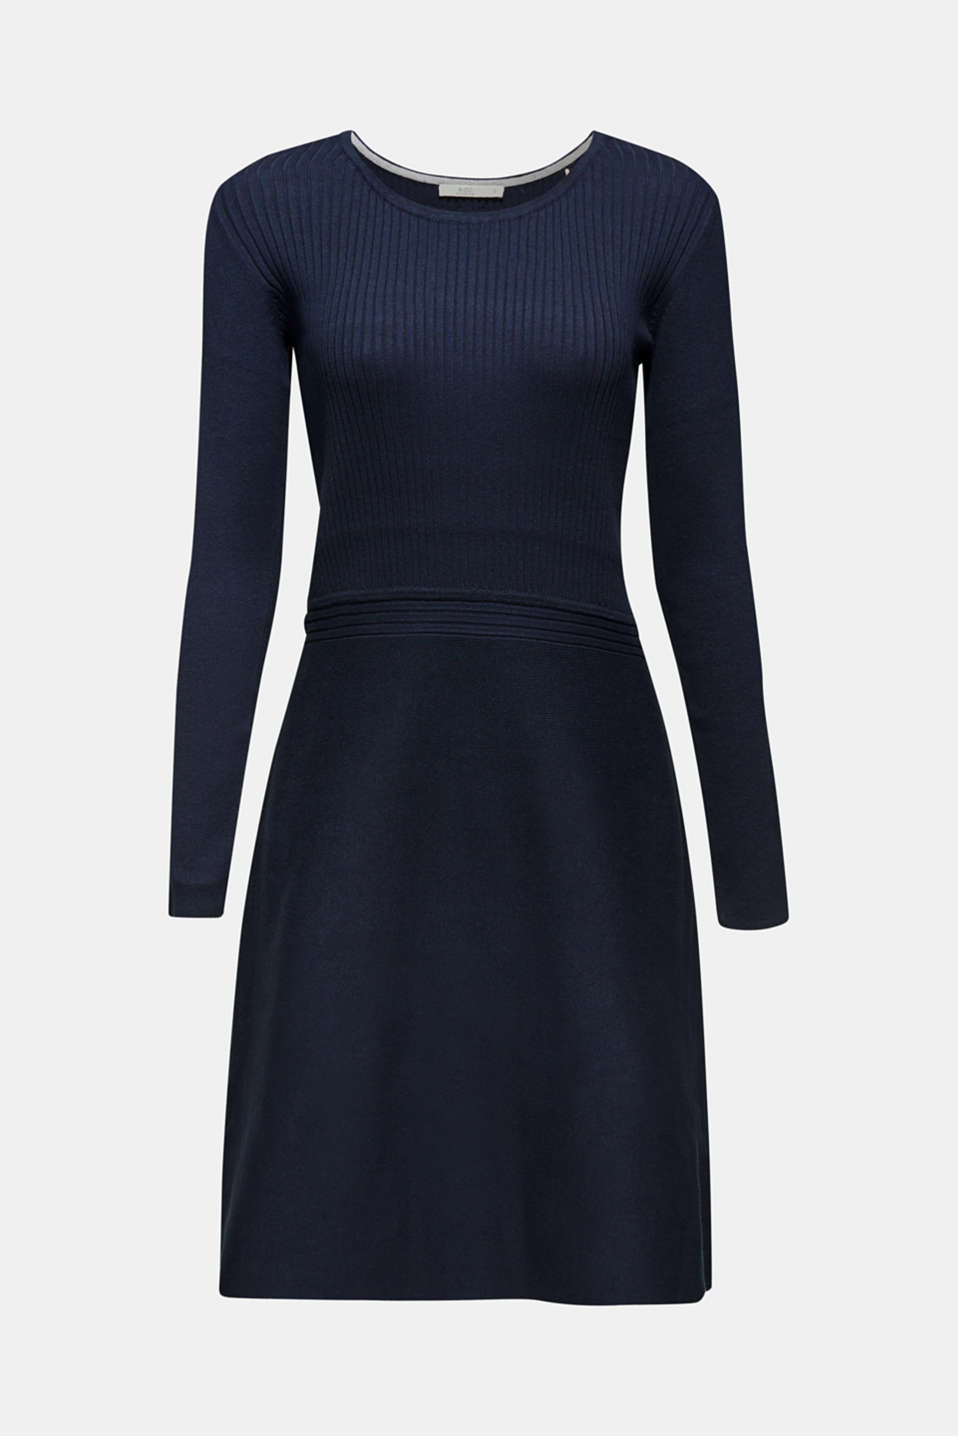 Dresses flat knitted, NAVY 2, detail image number 6